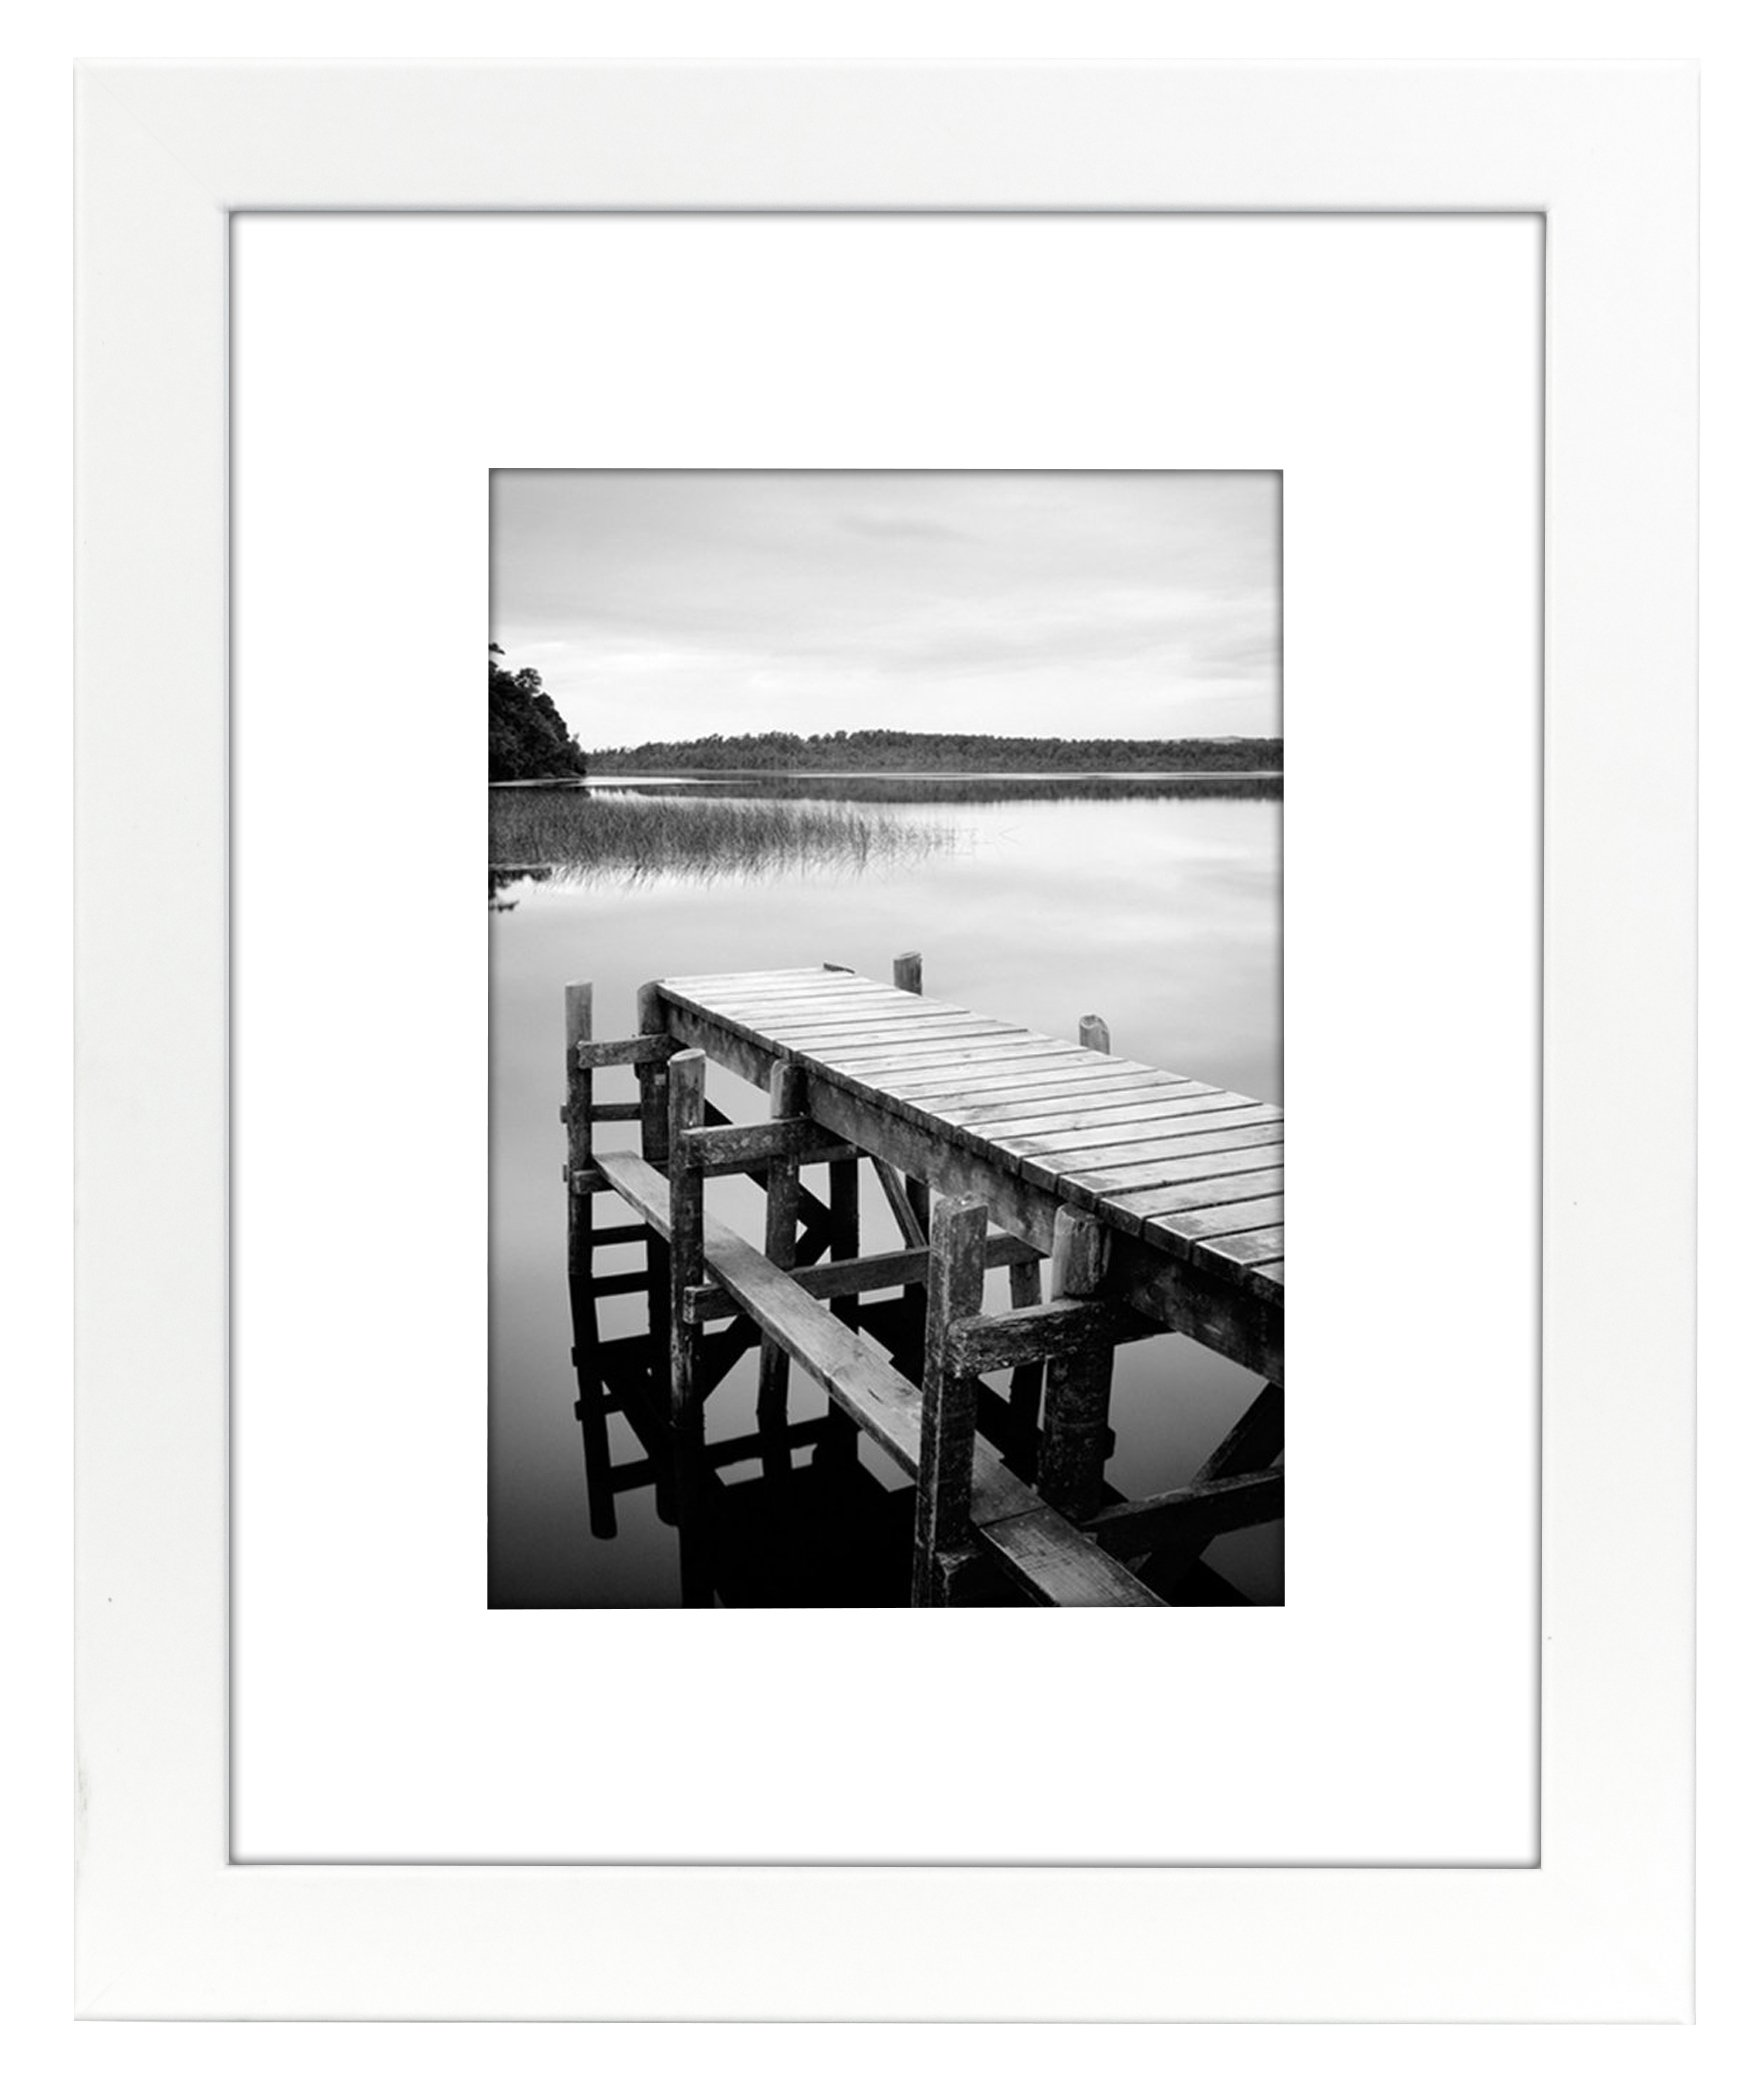 Americanflat 8x10 White Picture Frame - Matted to Display Photographs 5x7 or 8x10 Without Mat - Highest Quality Materials - Ready to Display on Table Top